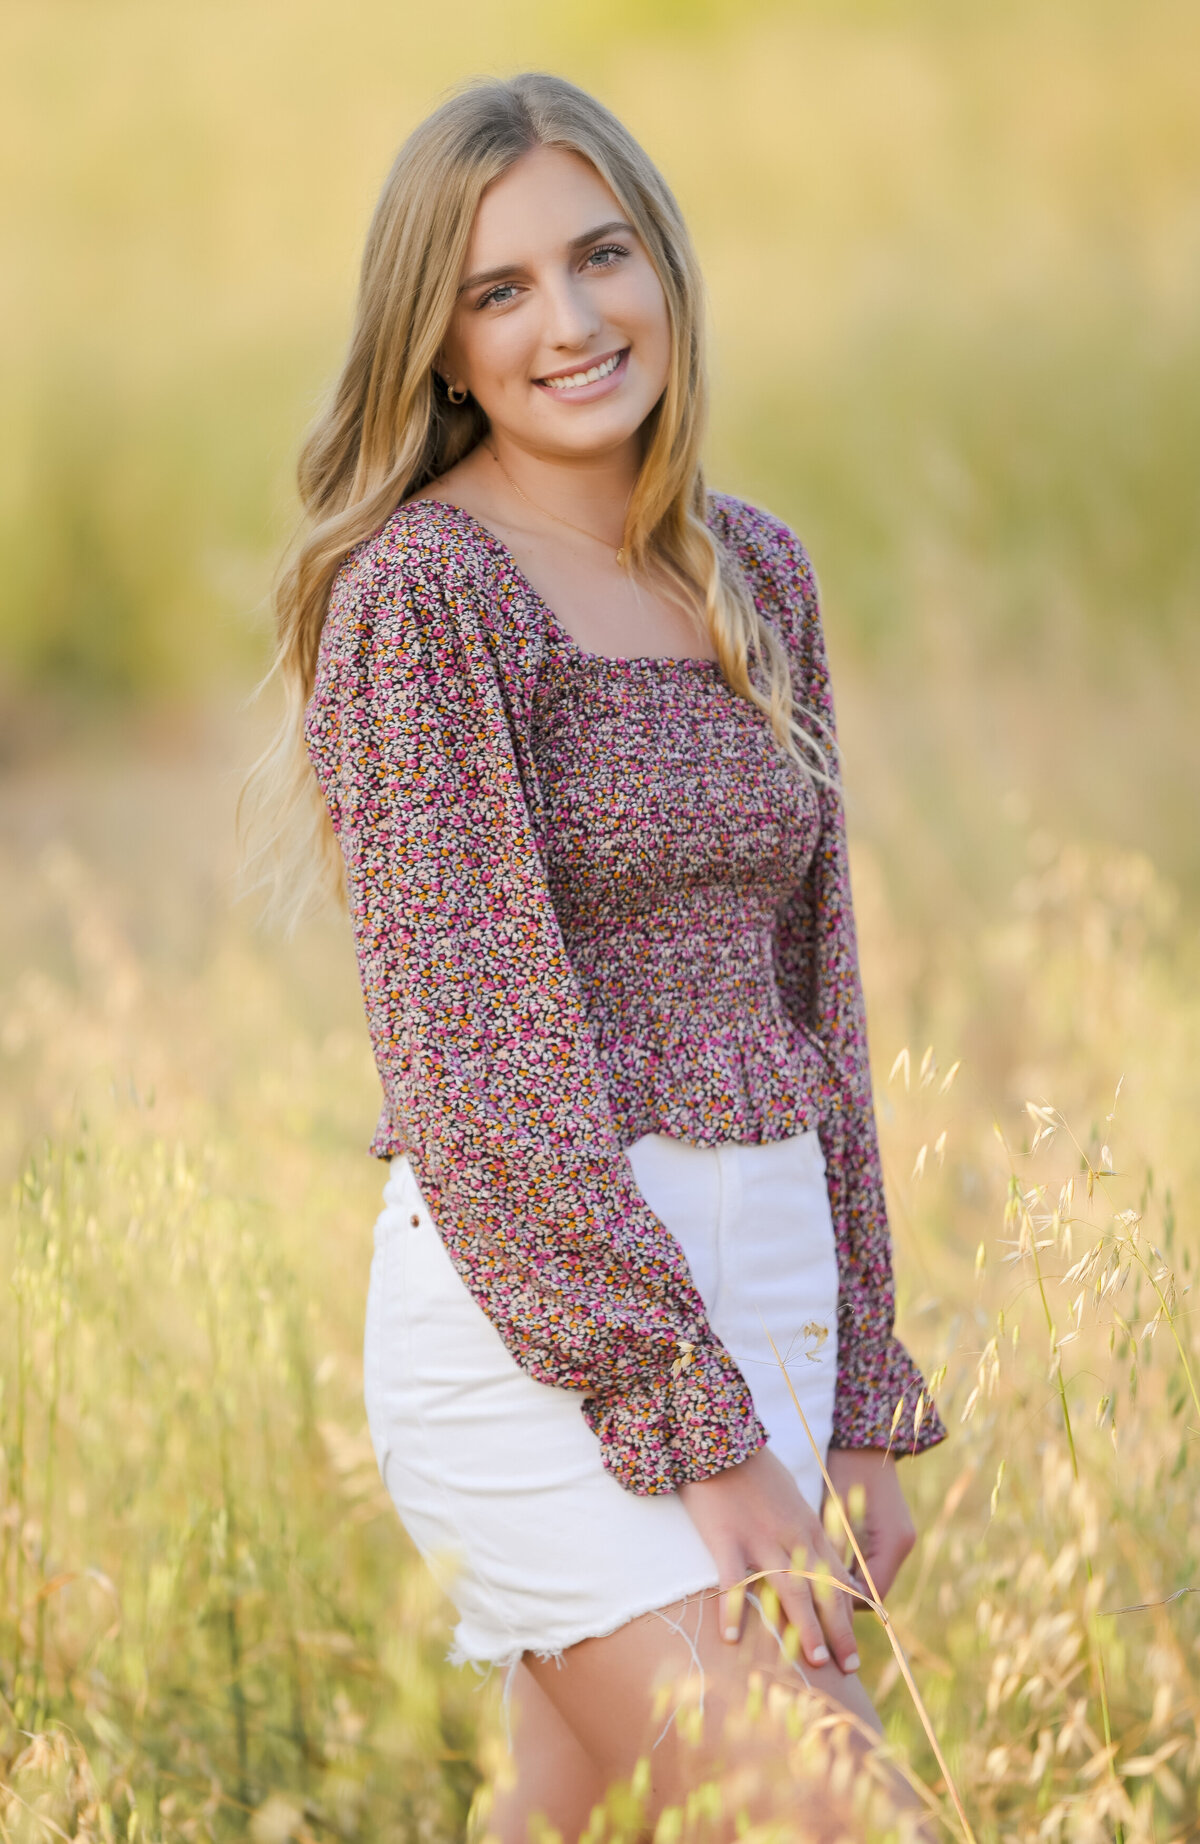 Carlsbad-High-School-Senior-Photography-CS_006